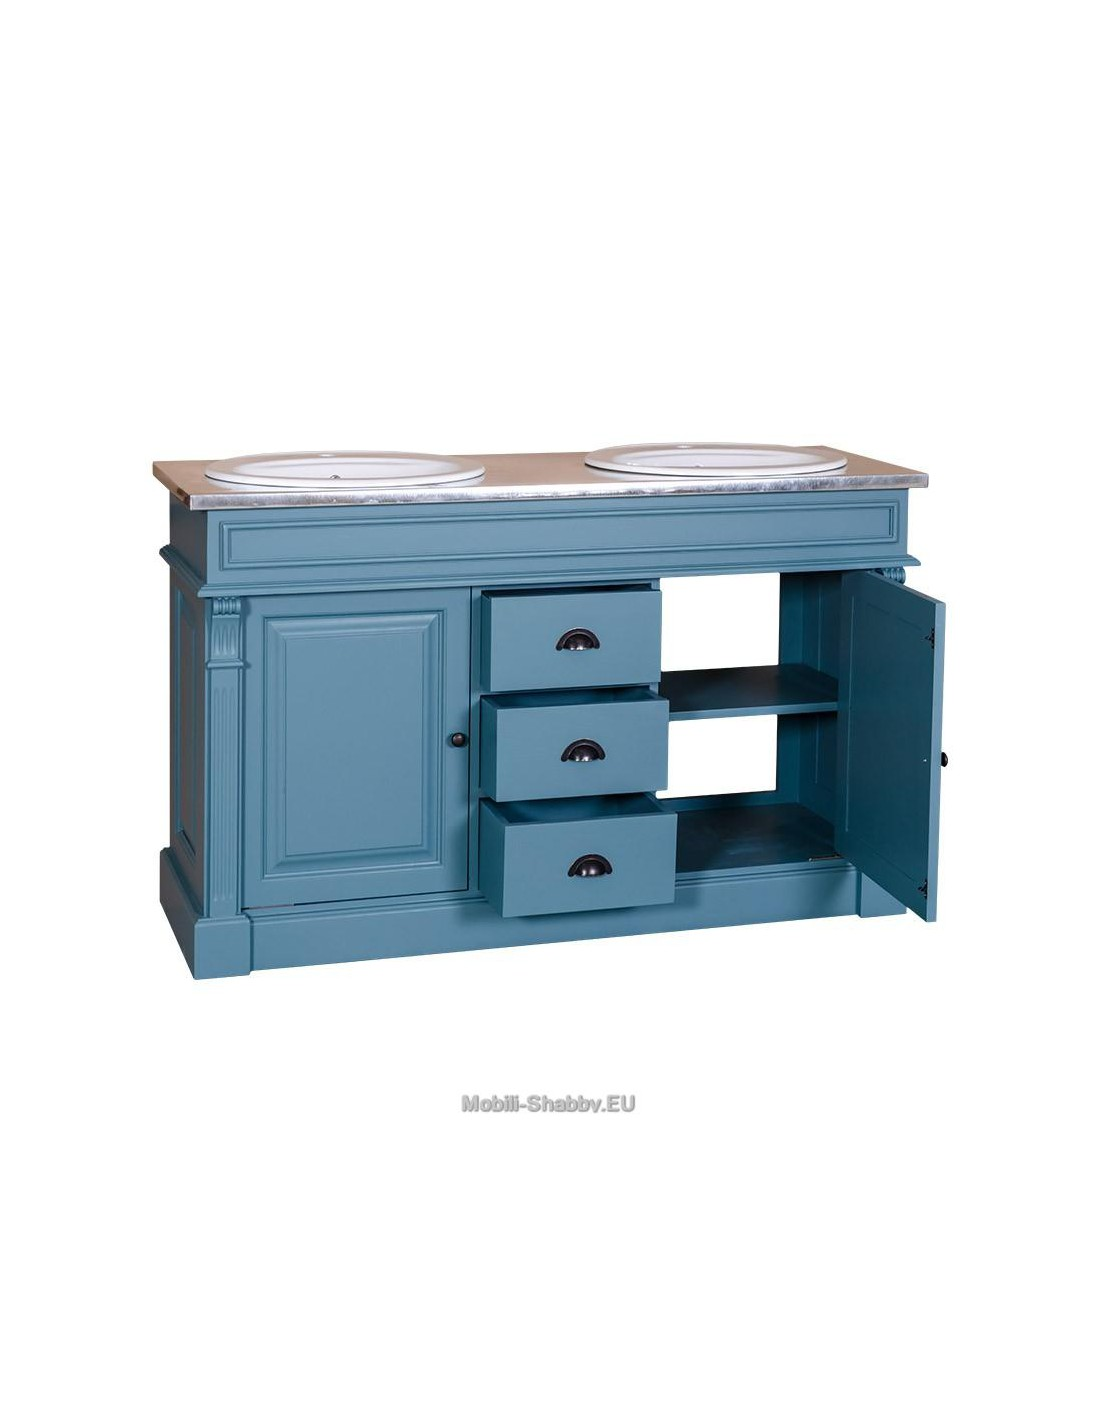 Mobile bagno sottolavabo country ms4001 mobili shabby eu for Mobile sotto lavabo